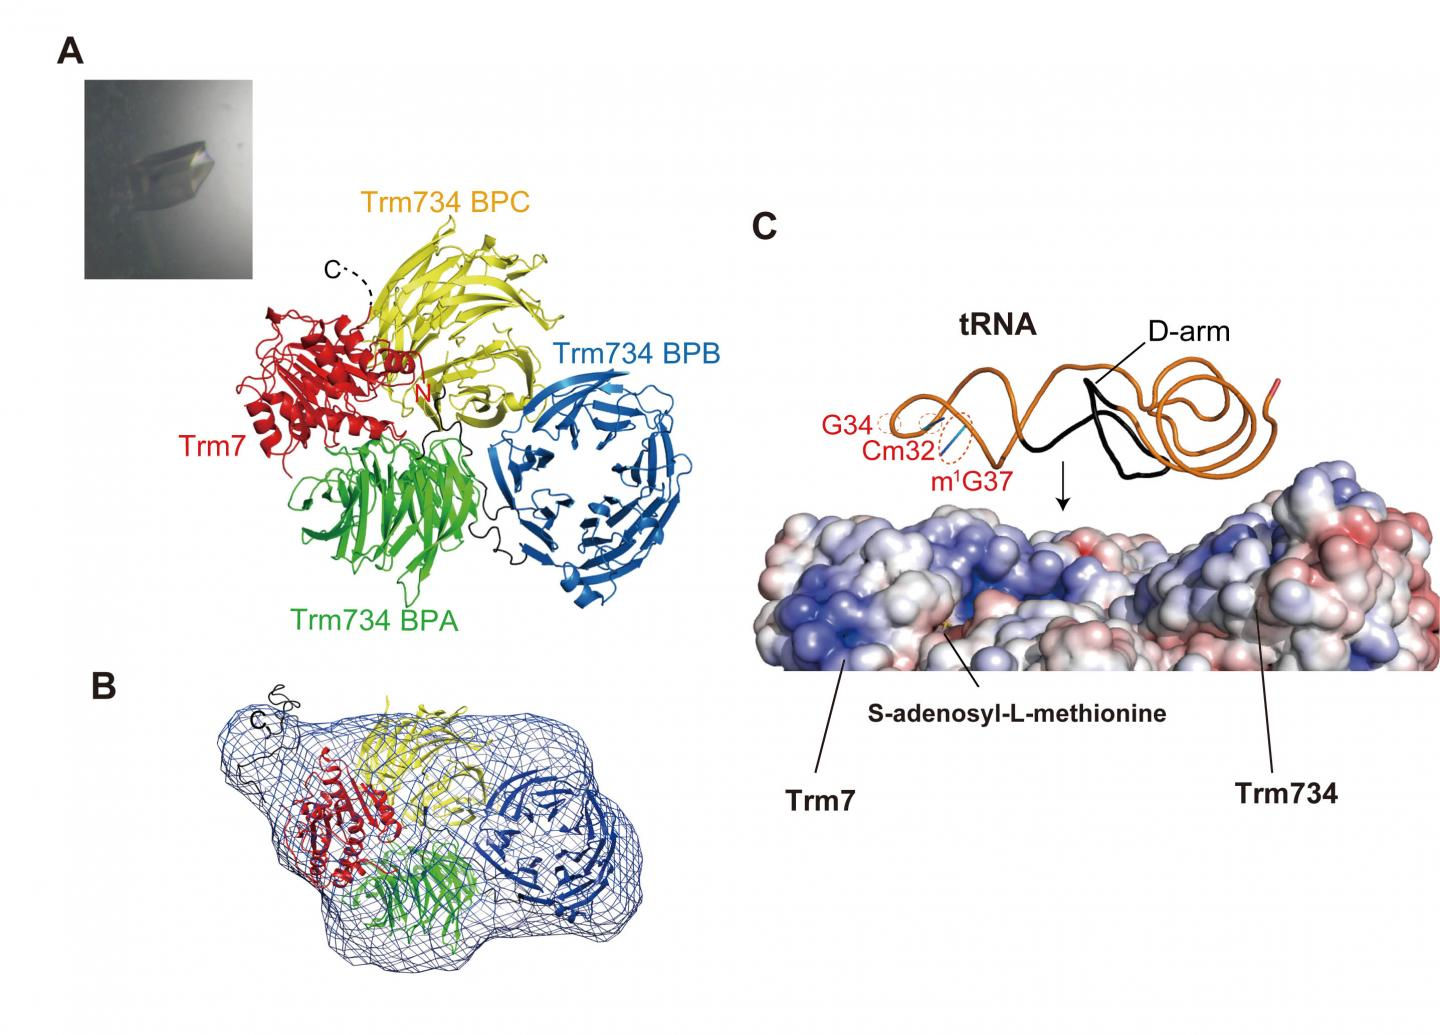 Structure of Trm7-Trm734 and Interaction Model between Trm7-Trm734 and Substrate tRNA